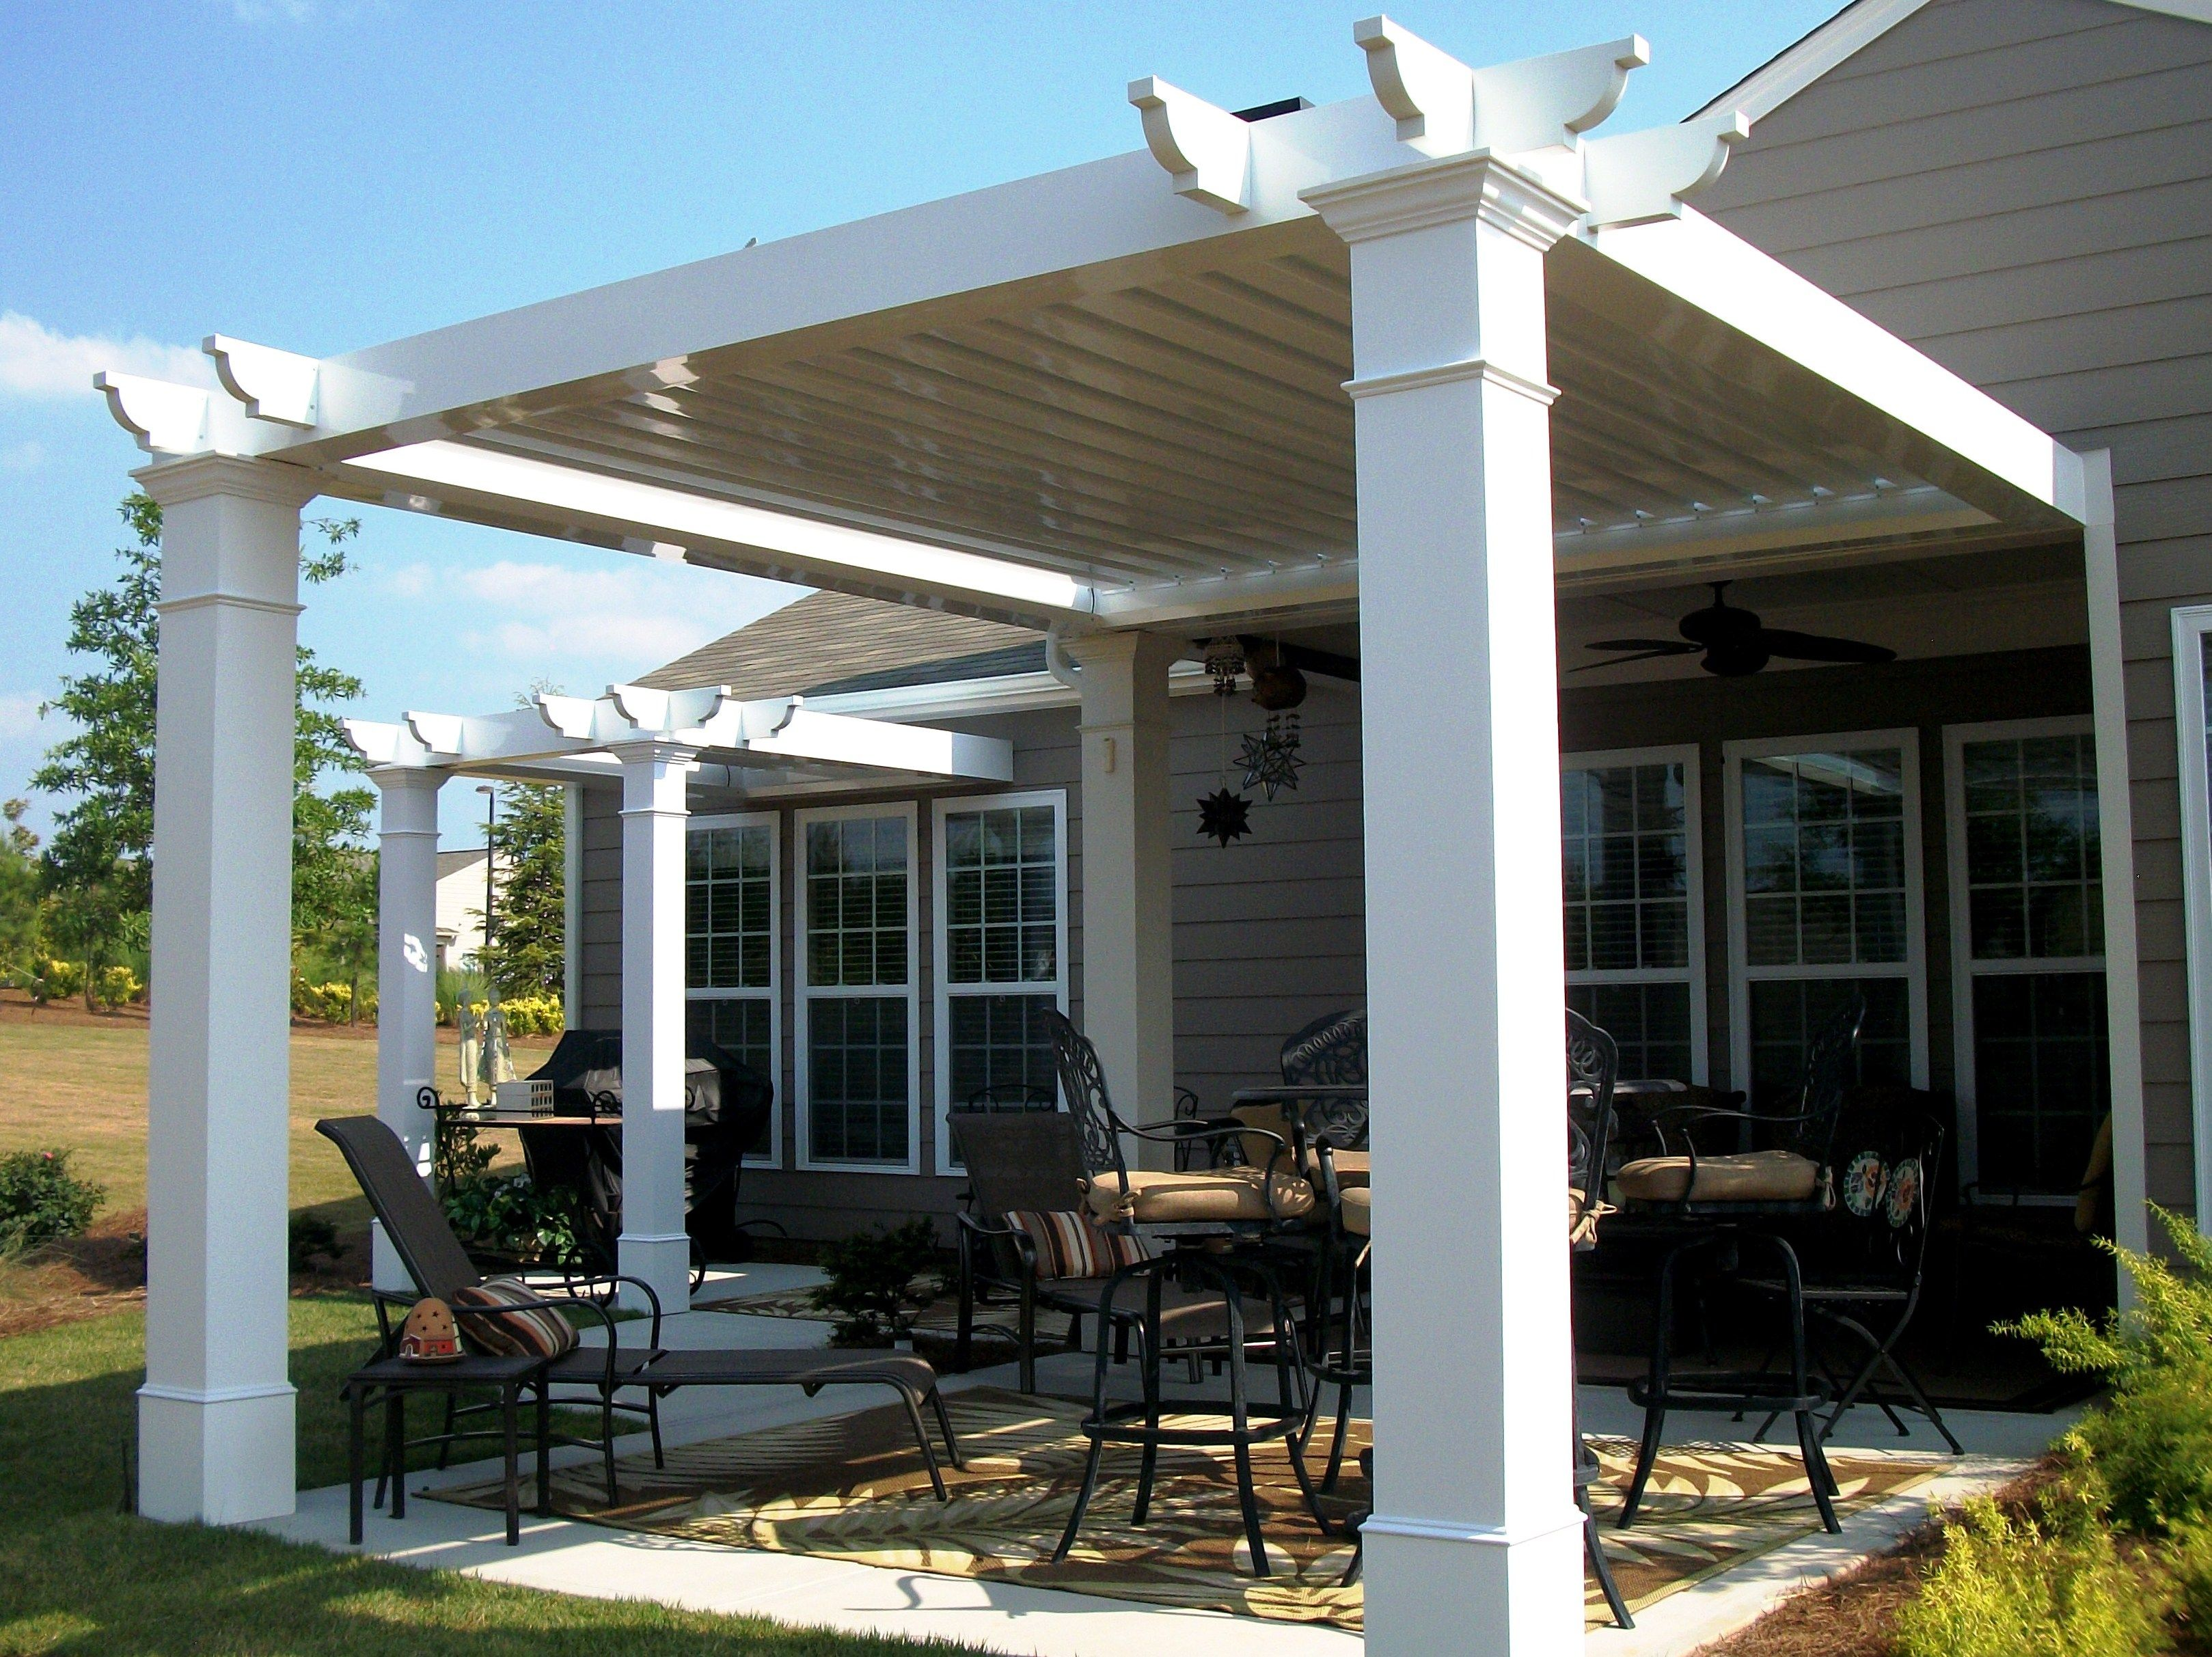 Modern simple pergola and gazebo design trends attached to house patio garden pinterest - Waterdichte pergola cover ...